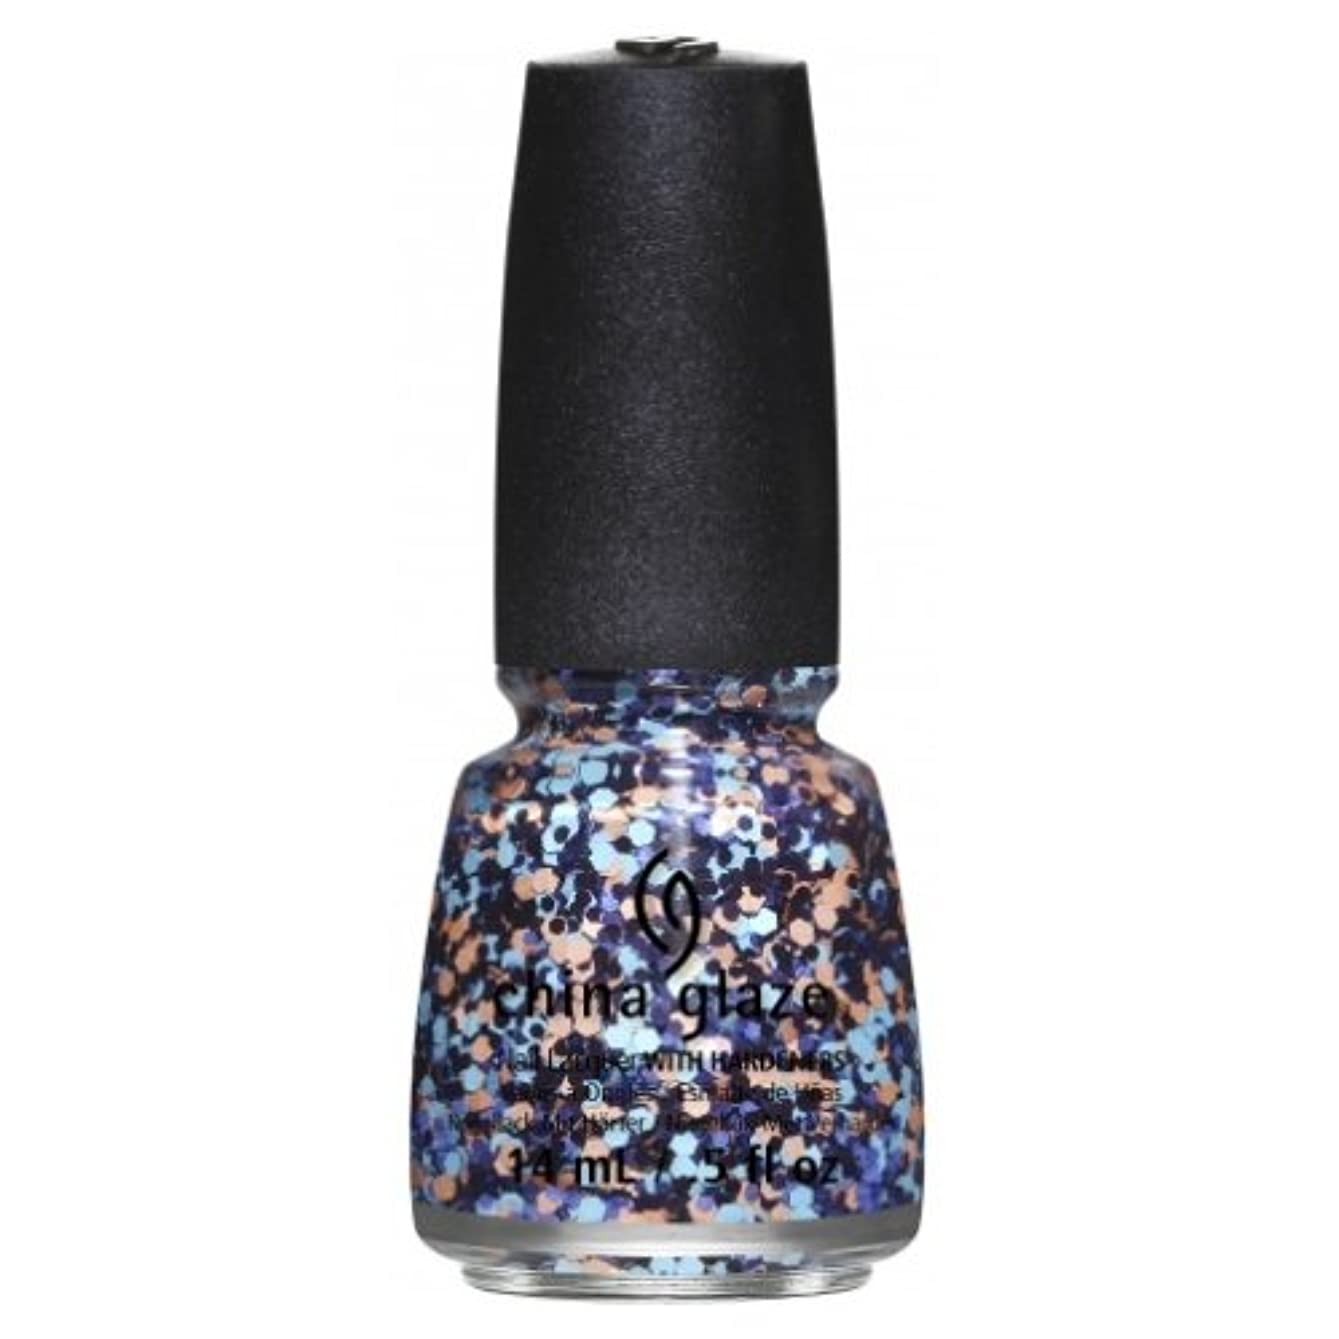 有力者罪制限するCHINA GLAZE Nail Lacquer - Suprise Collection - Glitter Up (並行輸入品)